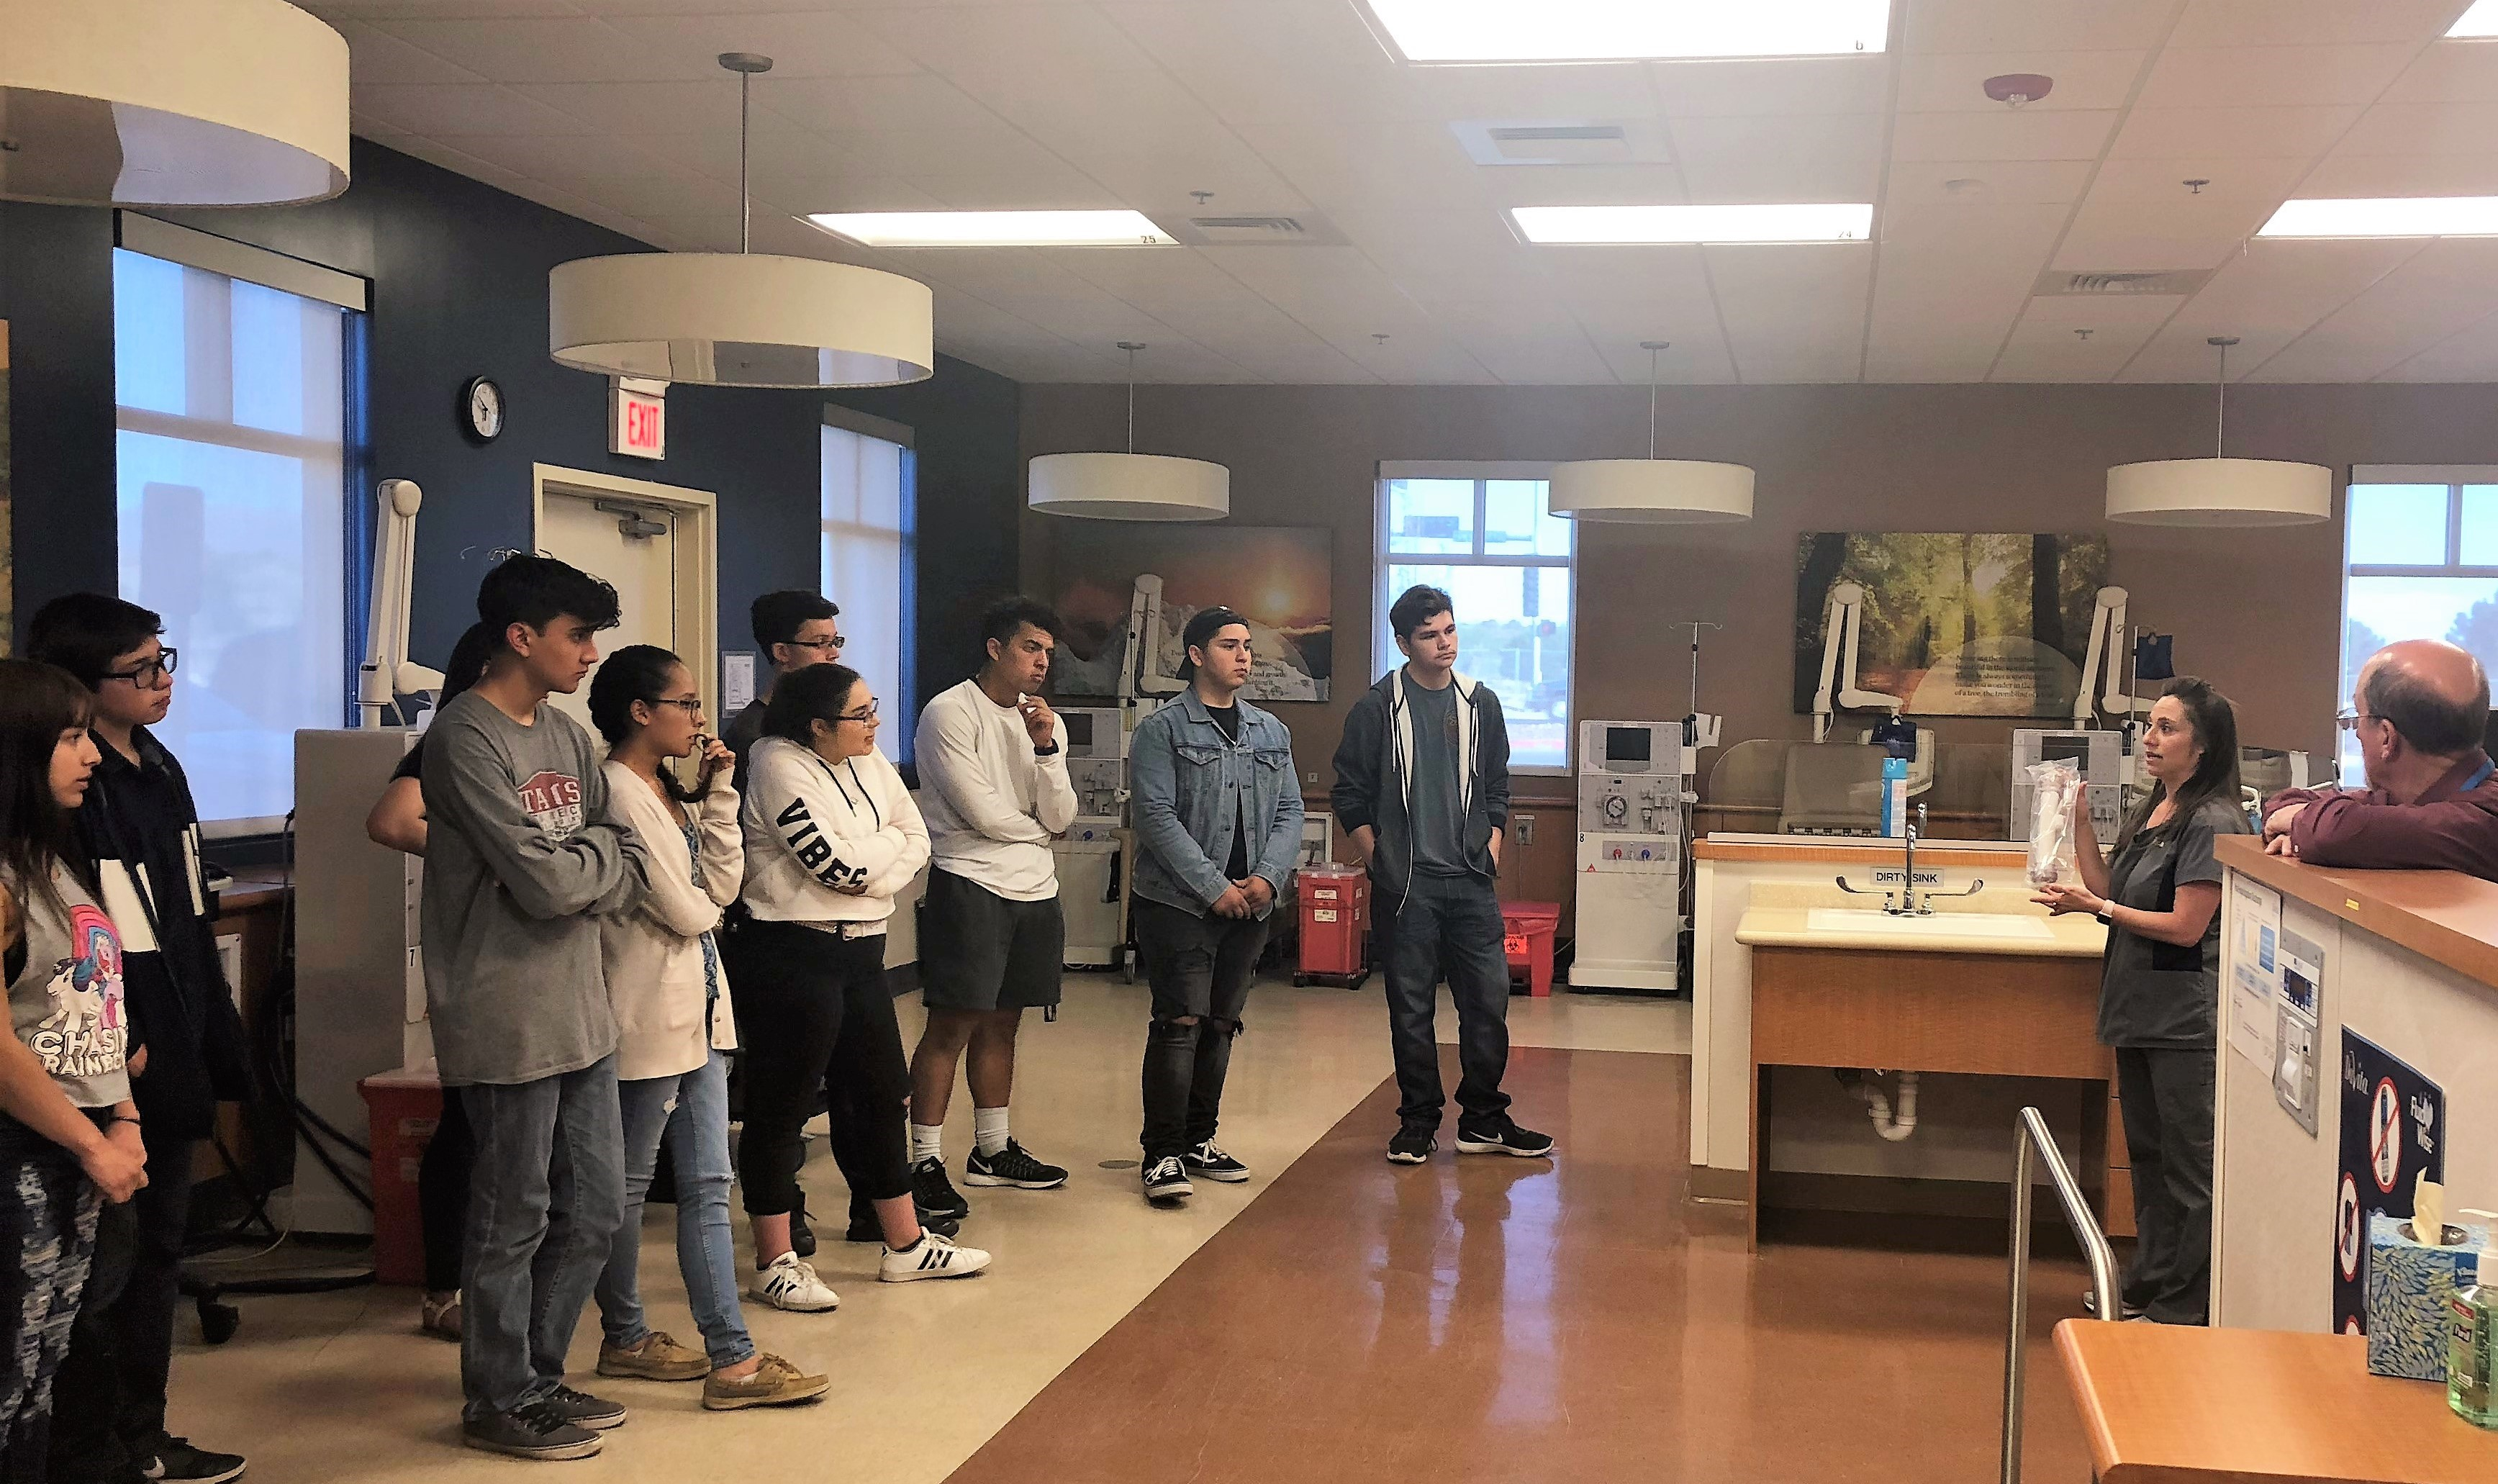 Burrell College of Osteopathic Medicine – High School Students